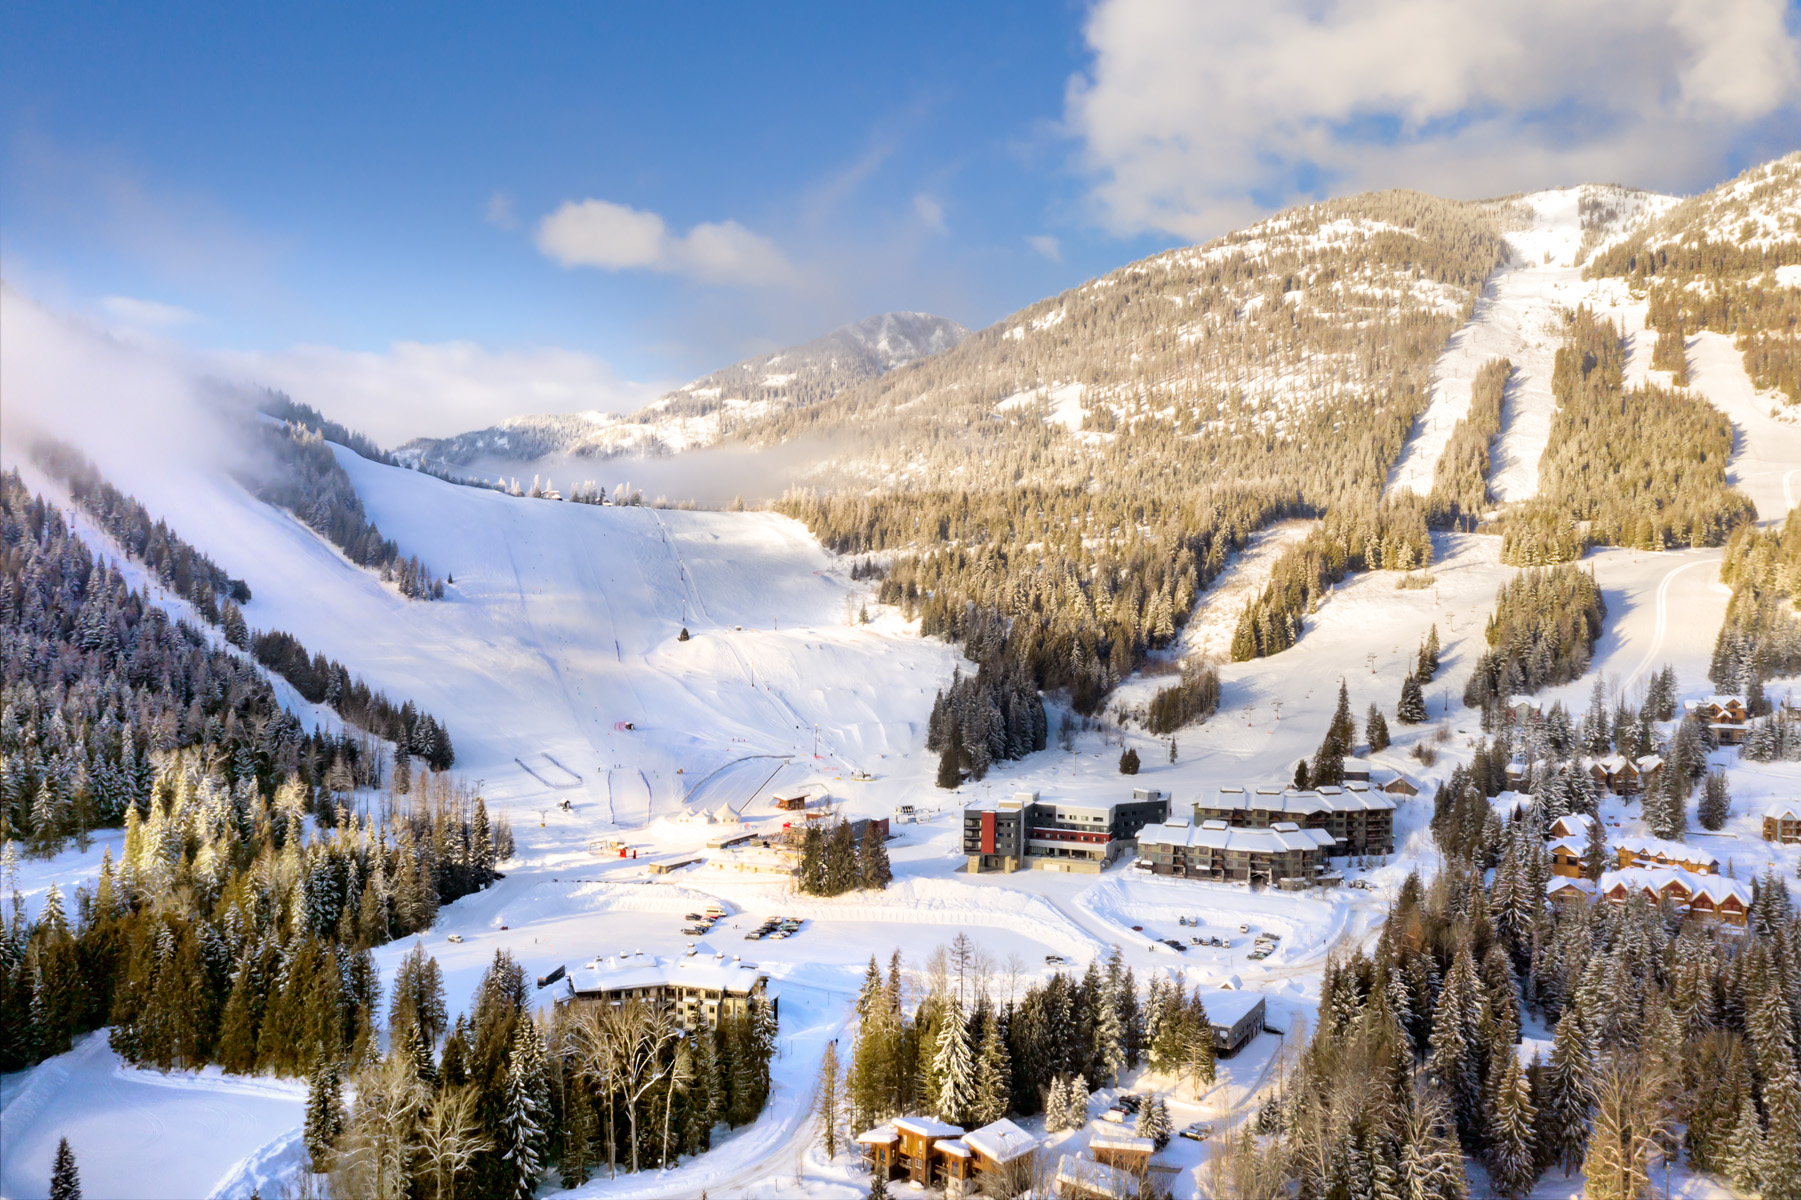 The Josie Hotel sits at the bottom of Red Mountain Resort. Courtesy of the Josie Hotel.